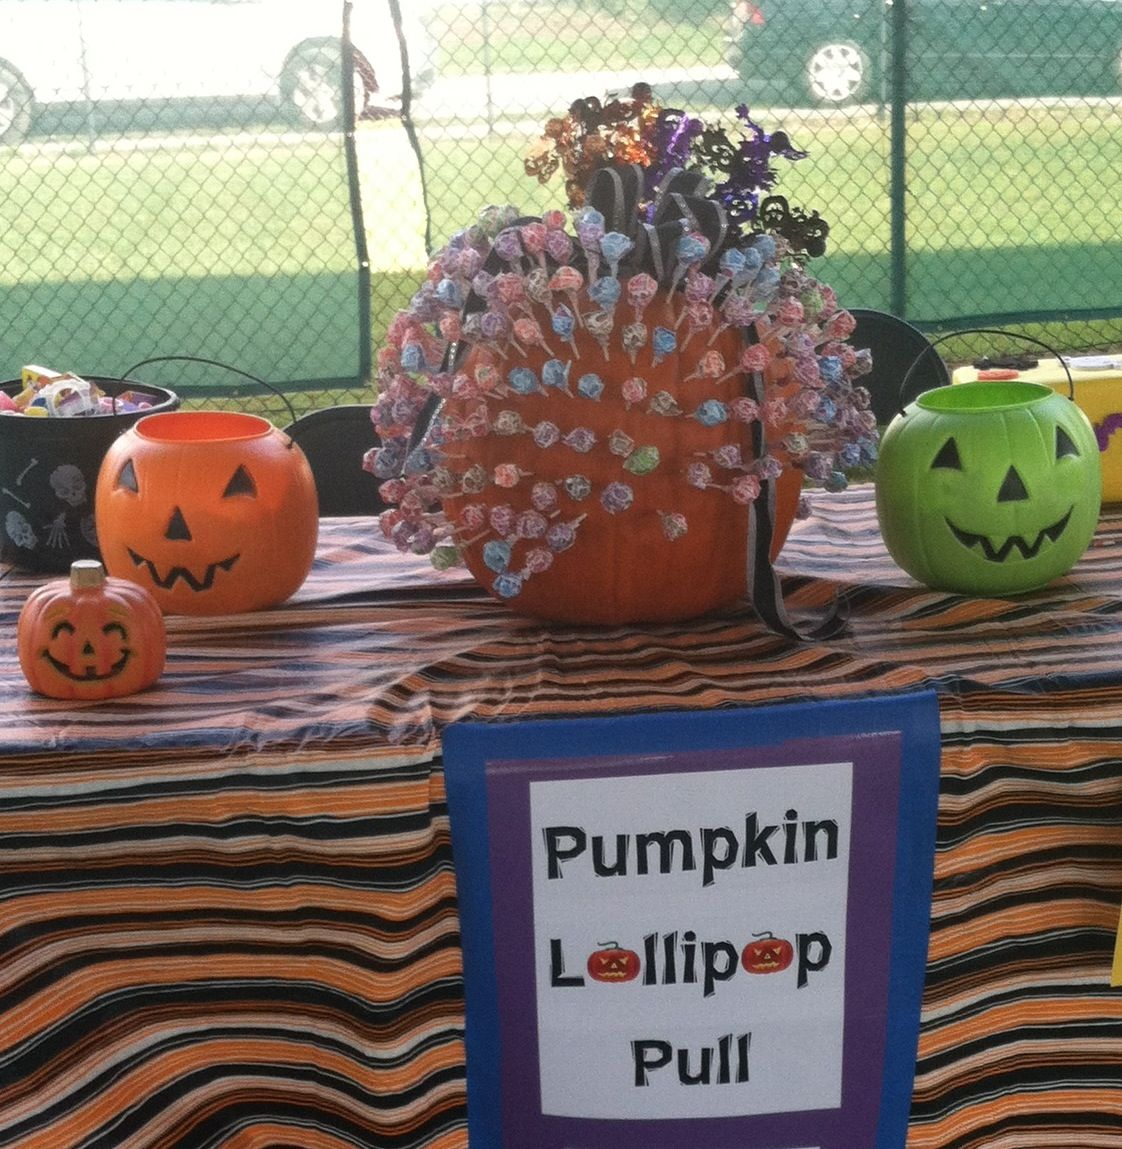 Fall Festival Game-Pick Up Pumpkins | Fall festival games ...